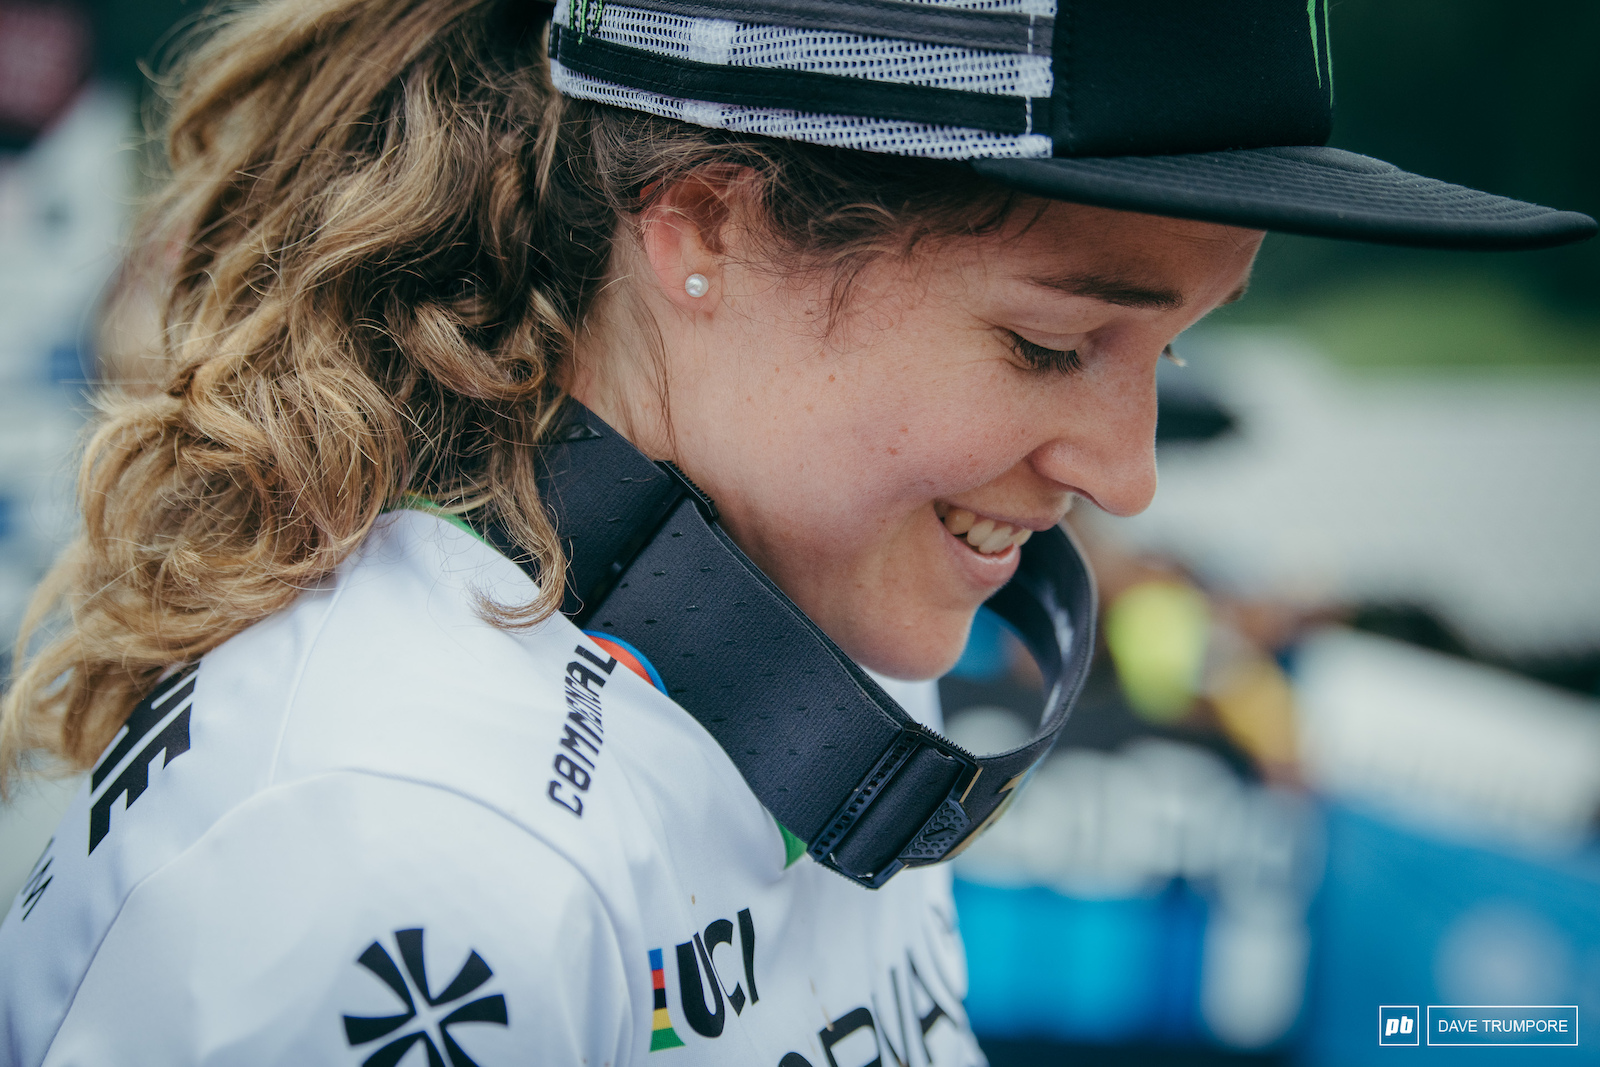 Camille Balanche happy finish on the podium and retain her lead in the overall